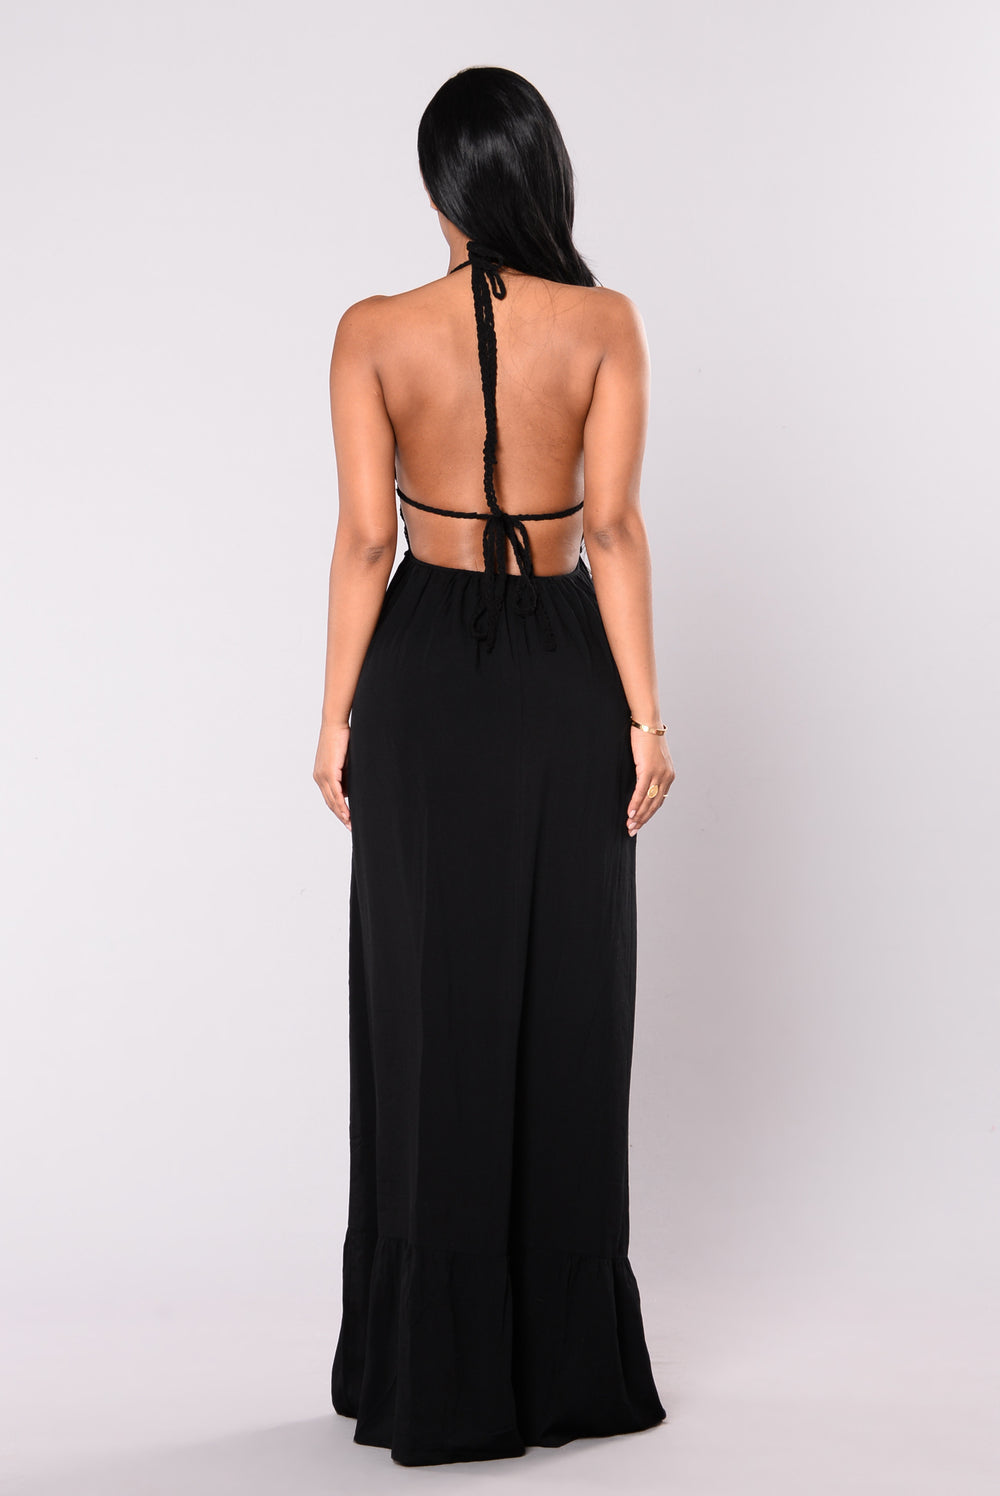 Running Seas Maxi Dress - Black